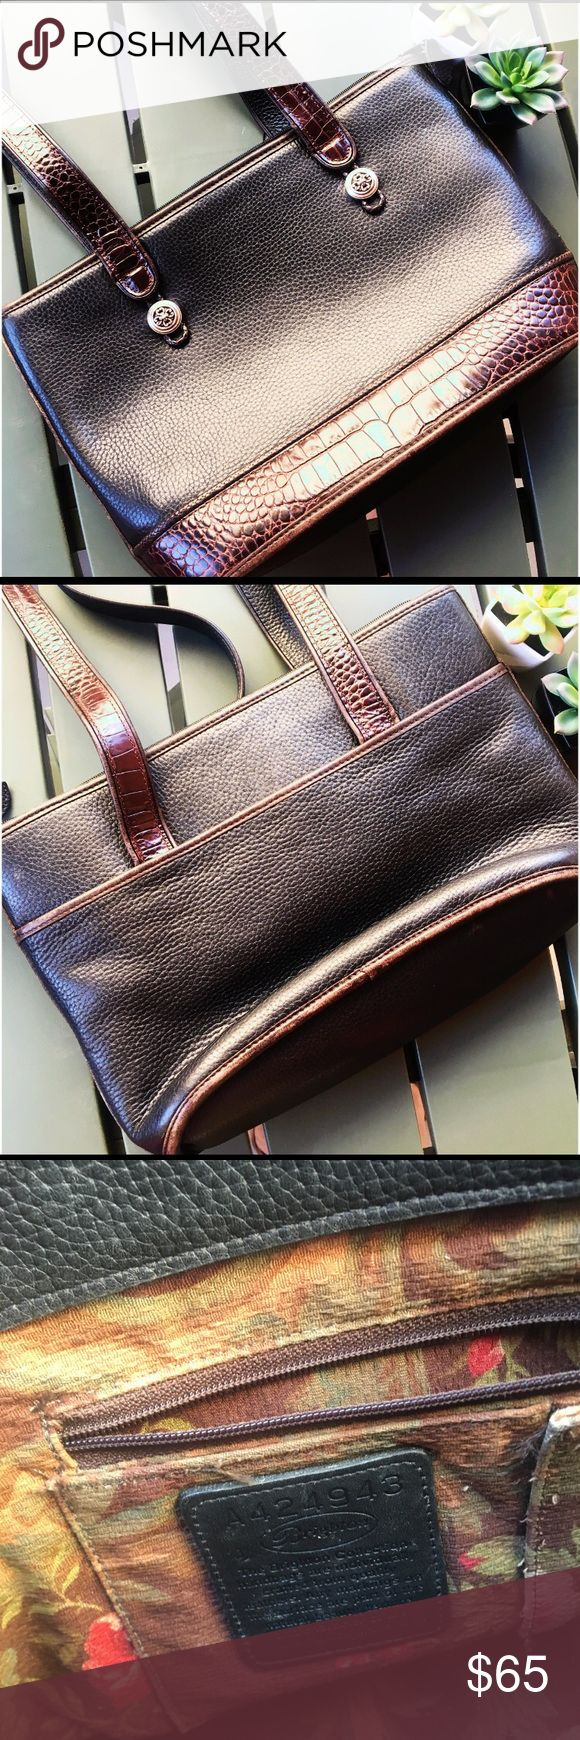 Brighton Pebbled Leather Purse Brighton pebbled leather shoulder bag. The leather is very high quality. The inside compartment has a fabric print, with 2 pockets and the Brighton creed patch. It also has a leather hanging clip to attach your keys. The backside of the purse offers another pocket. The bag is in gently used, good condition. There are a few very light scuffs on the leather that can easily be buffed out, but they aren't noticeable. There's also a tiny red mark on the bottom of…